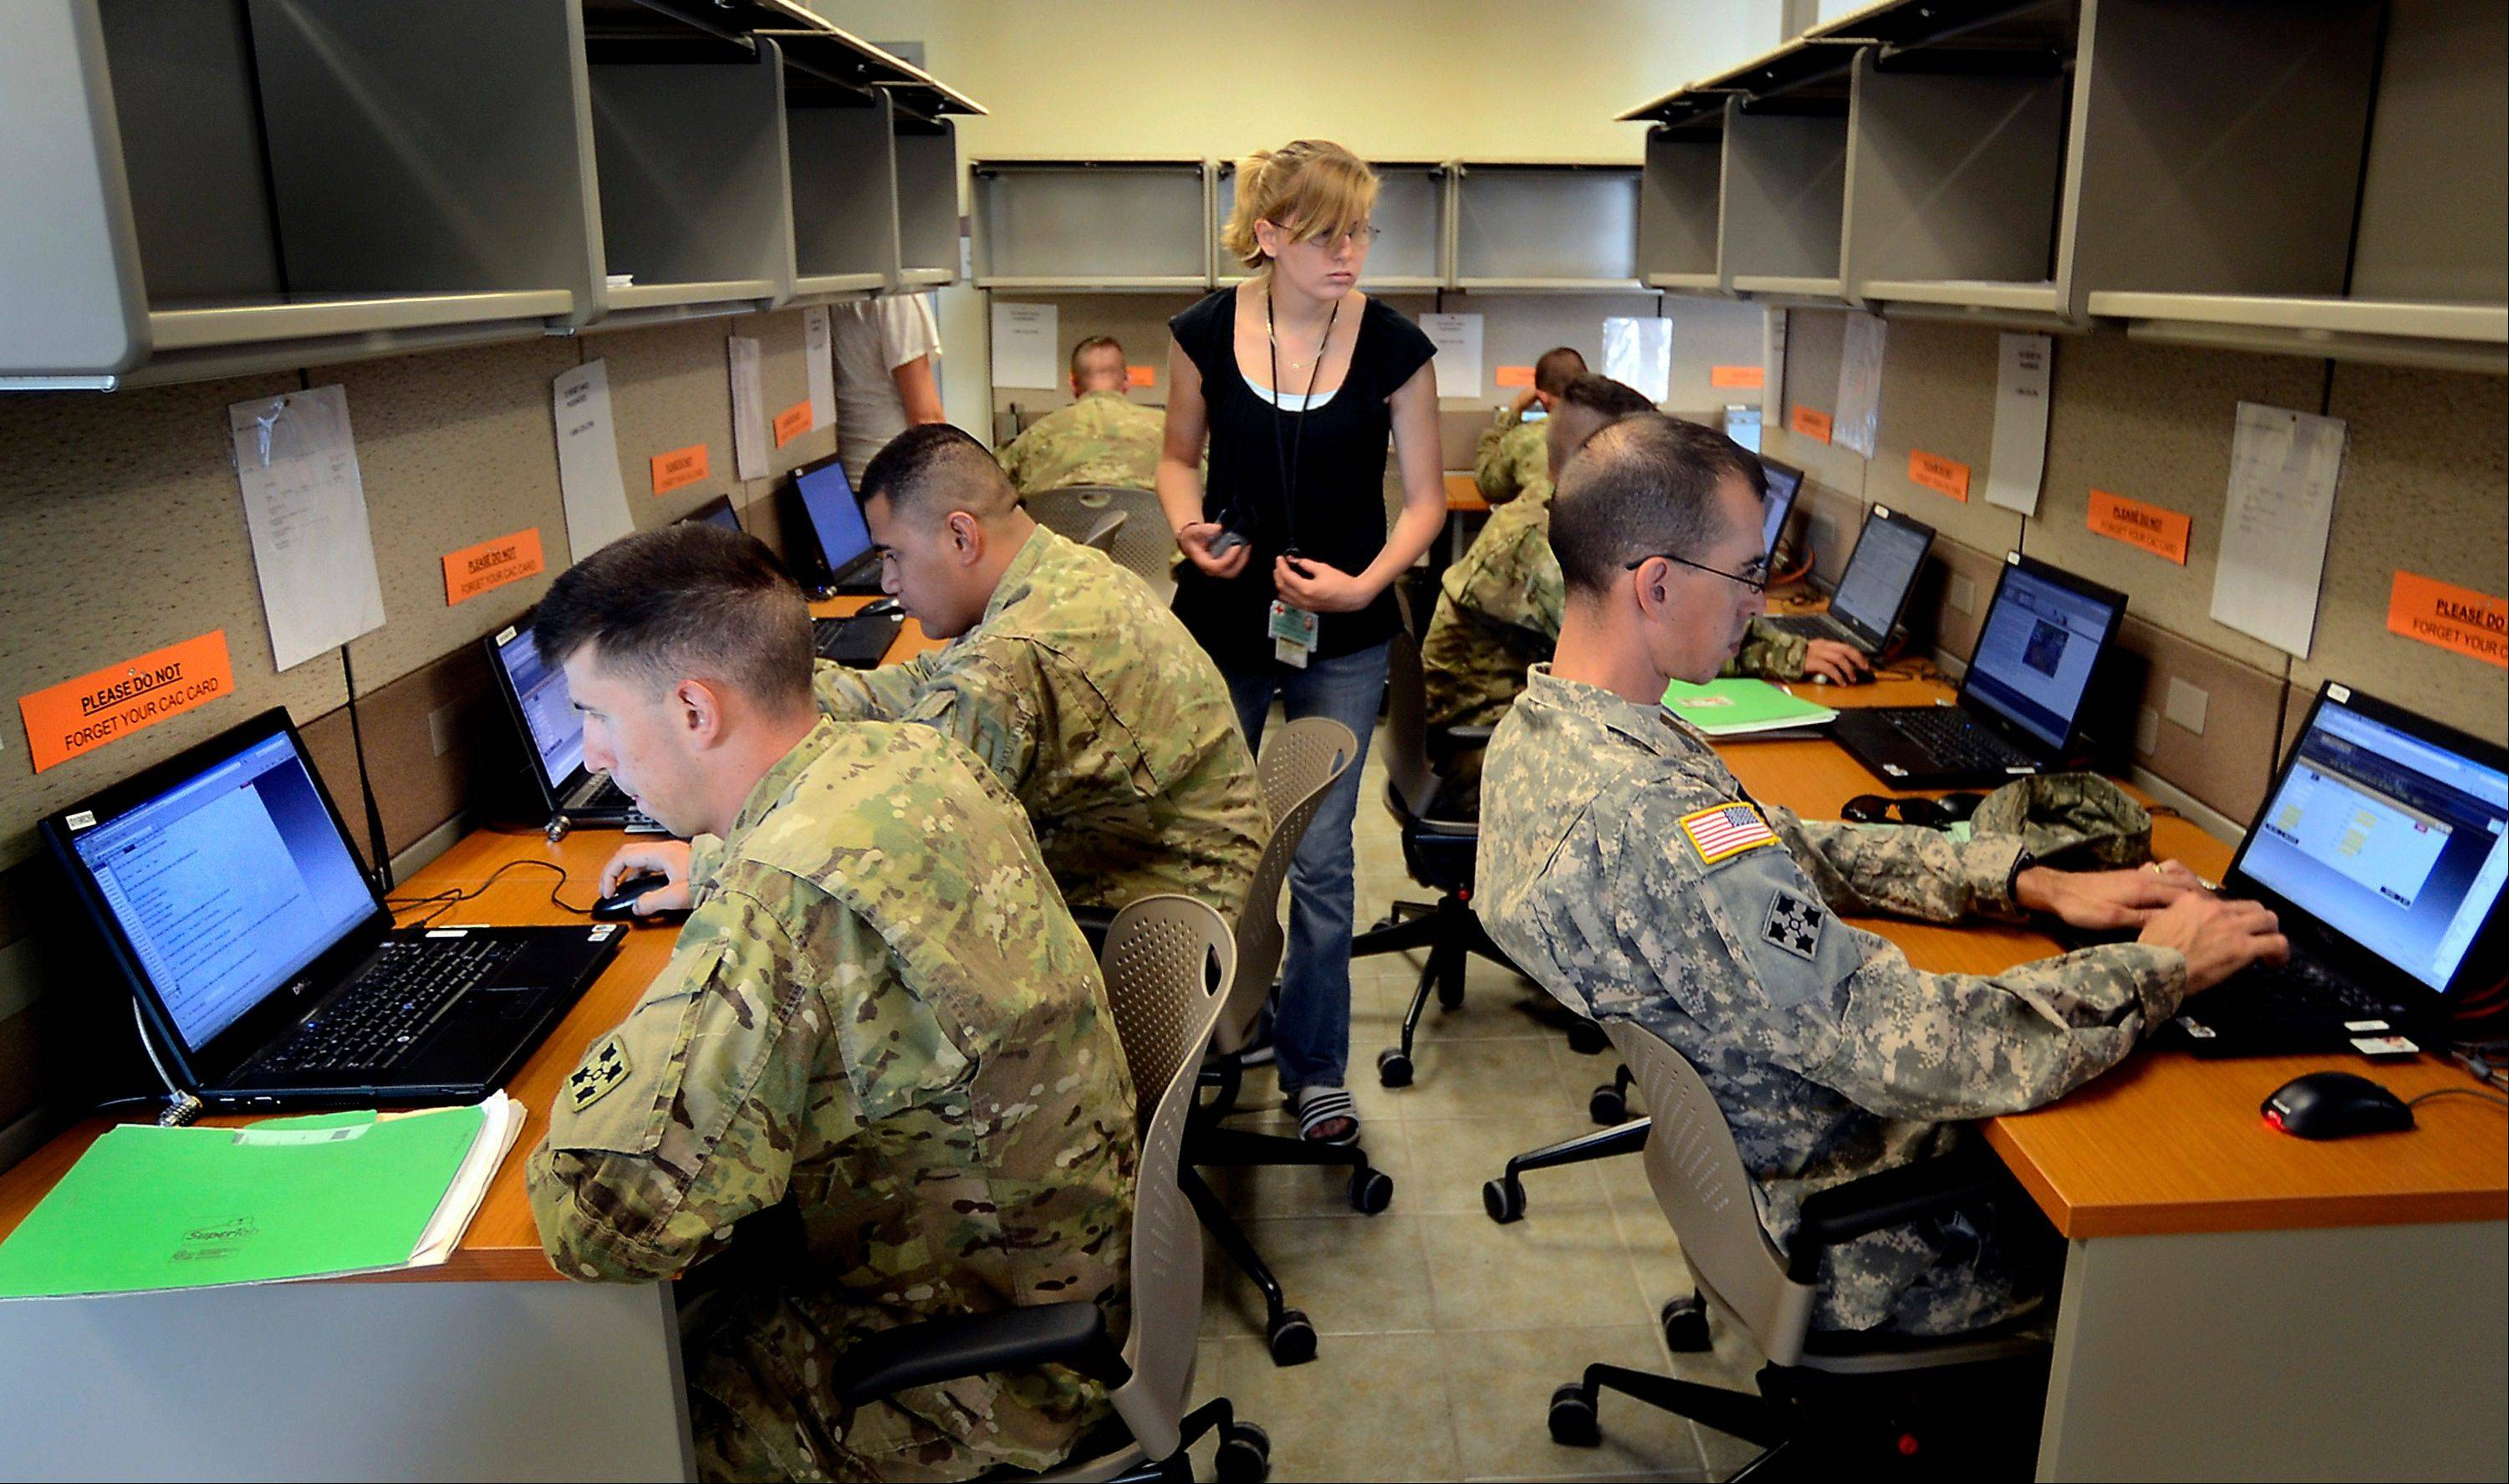 Soldiers from the 4th Infantry Division are evaluated during a cognitive testing exercise to help determine if they suffer from TBI. Red Cross volunteer Shelly Horner, center, helps with questions.